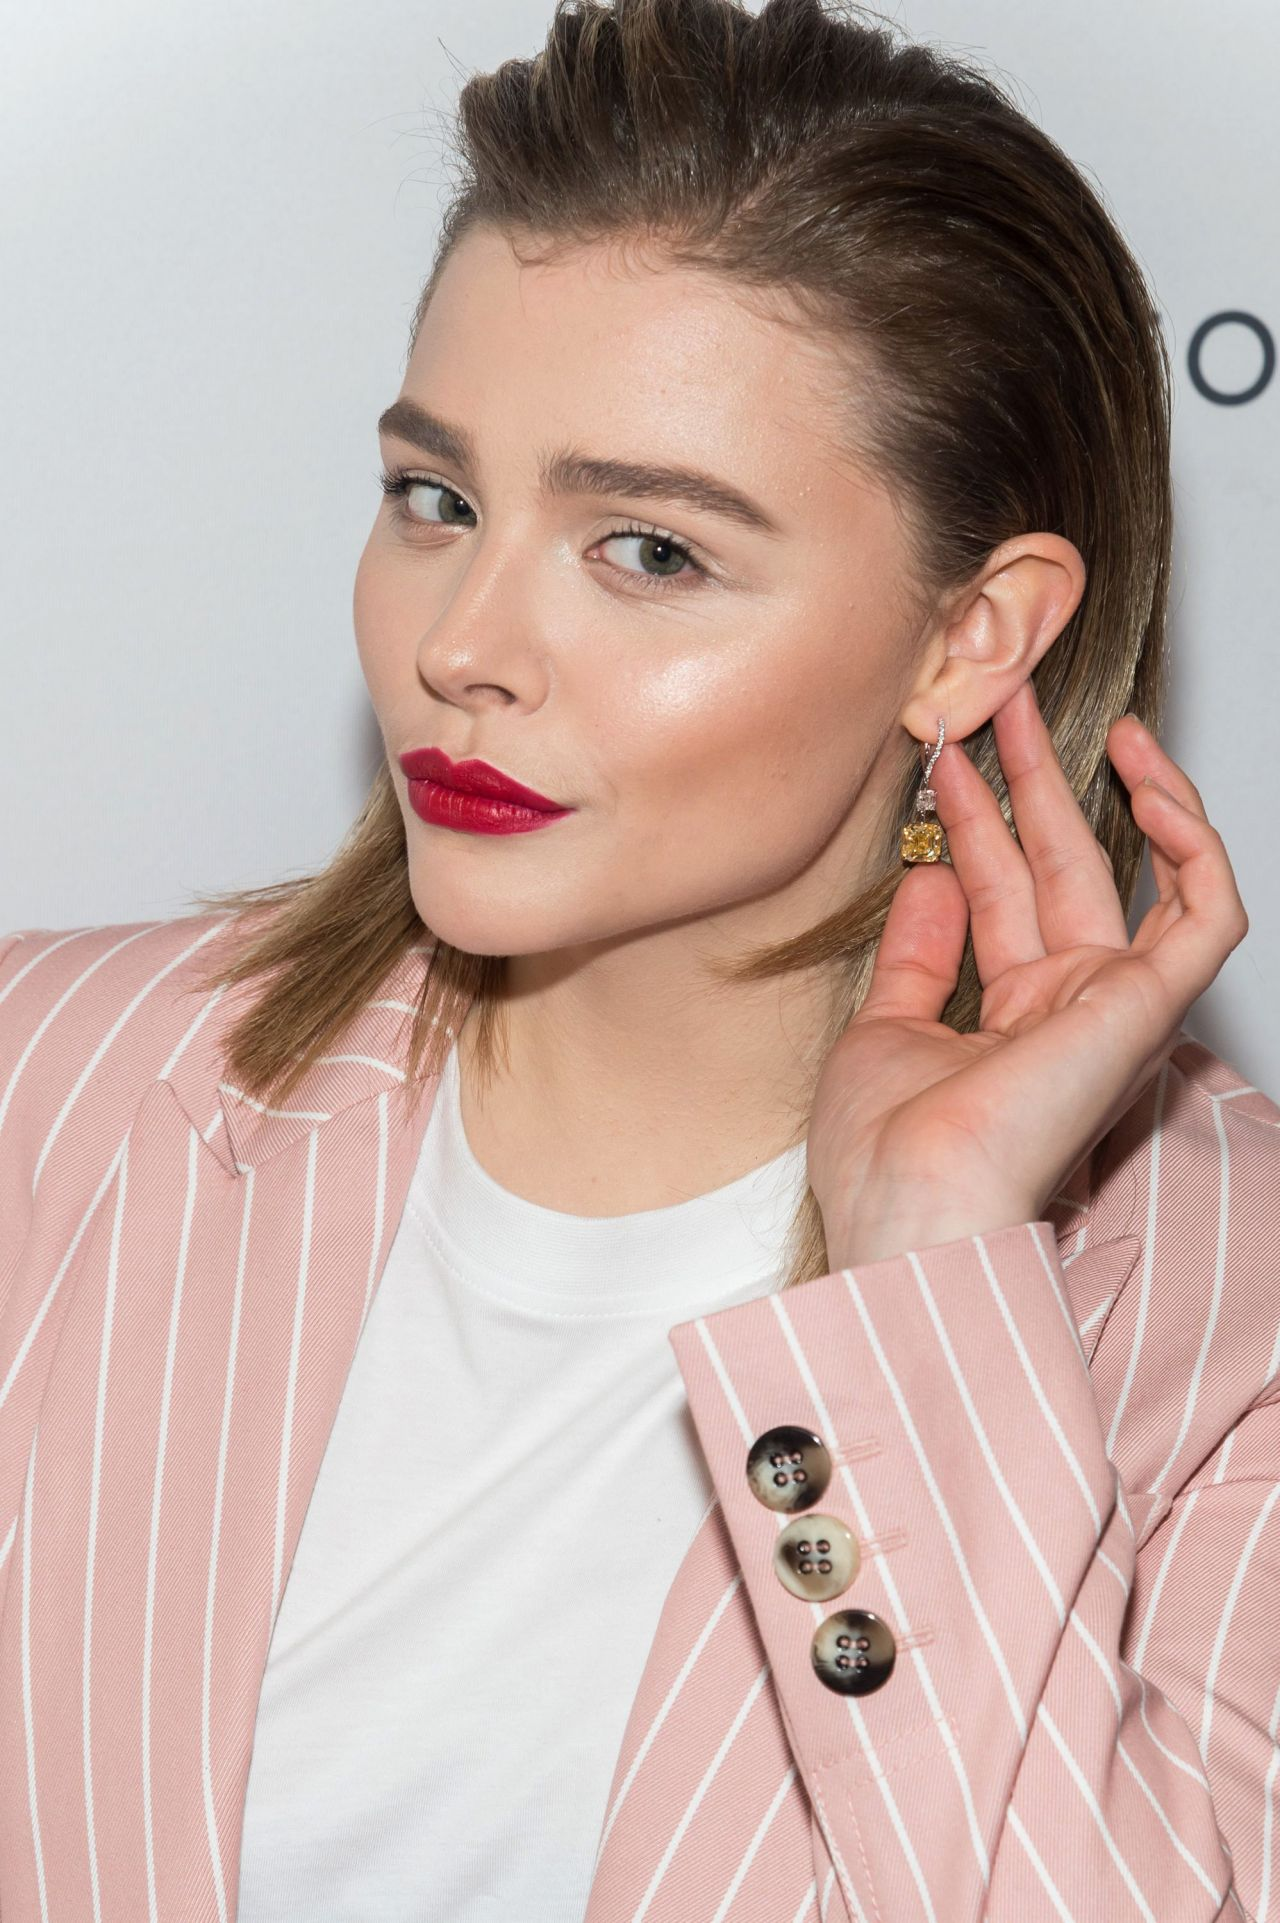 chloe moretz latest photos - celebmafia